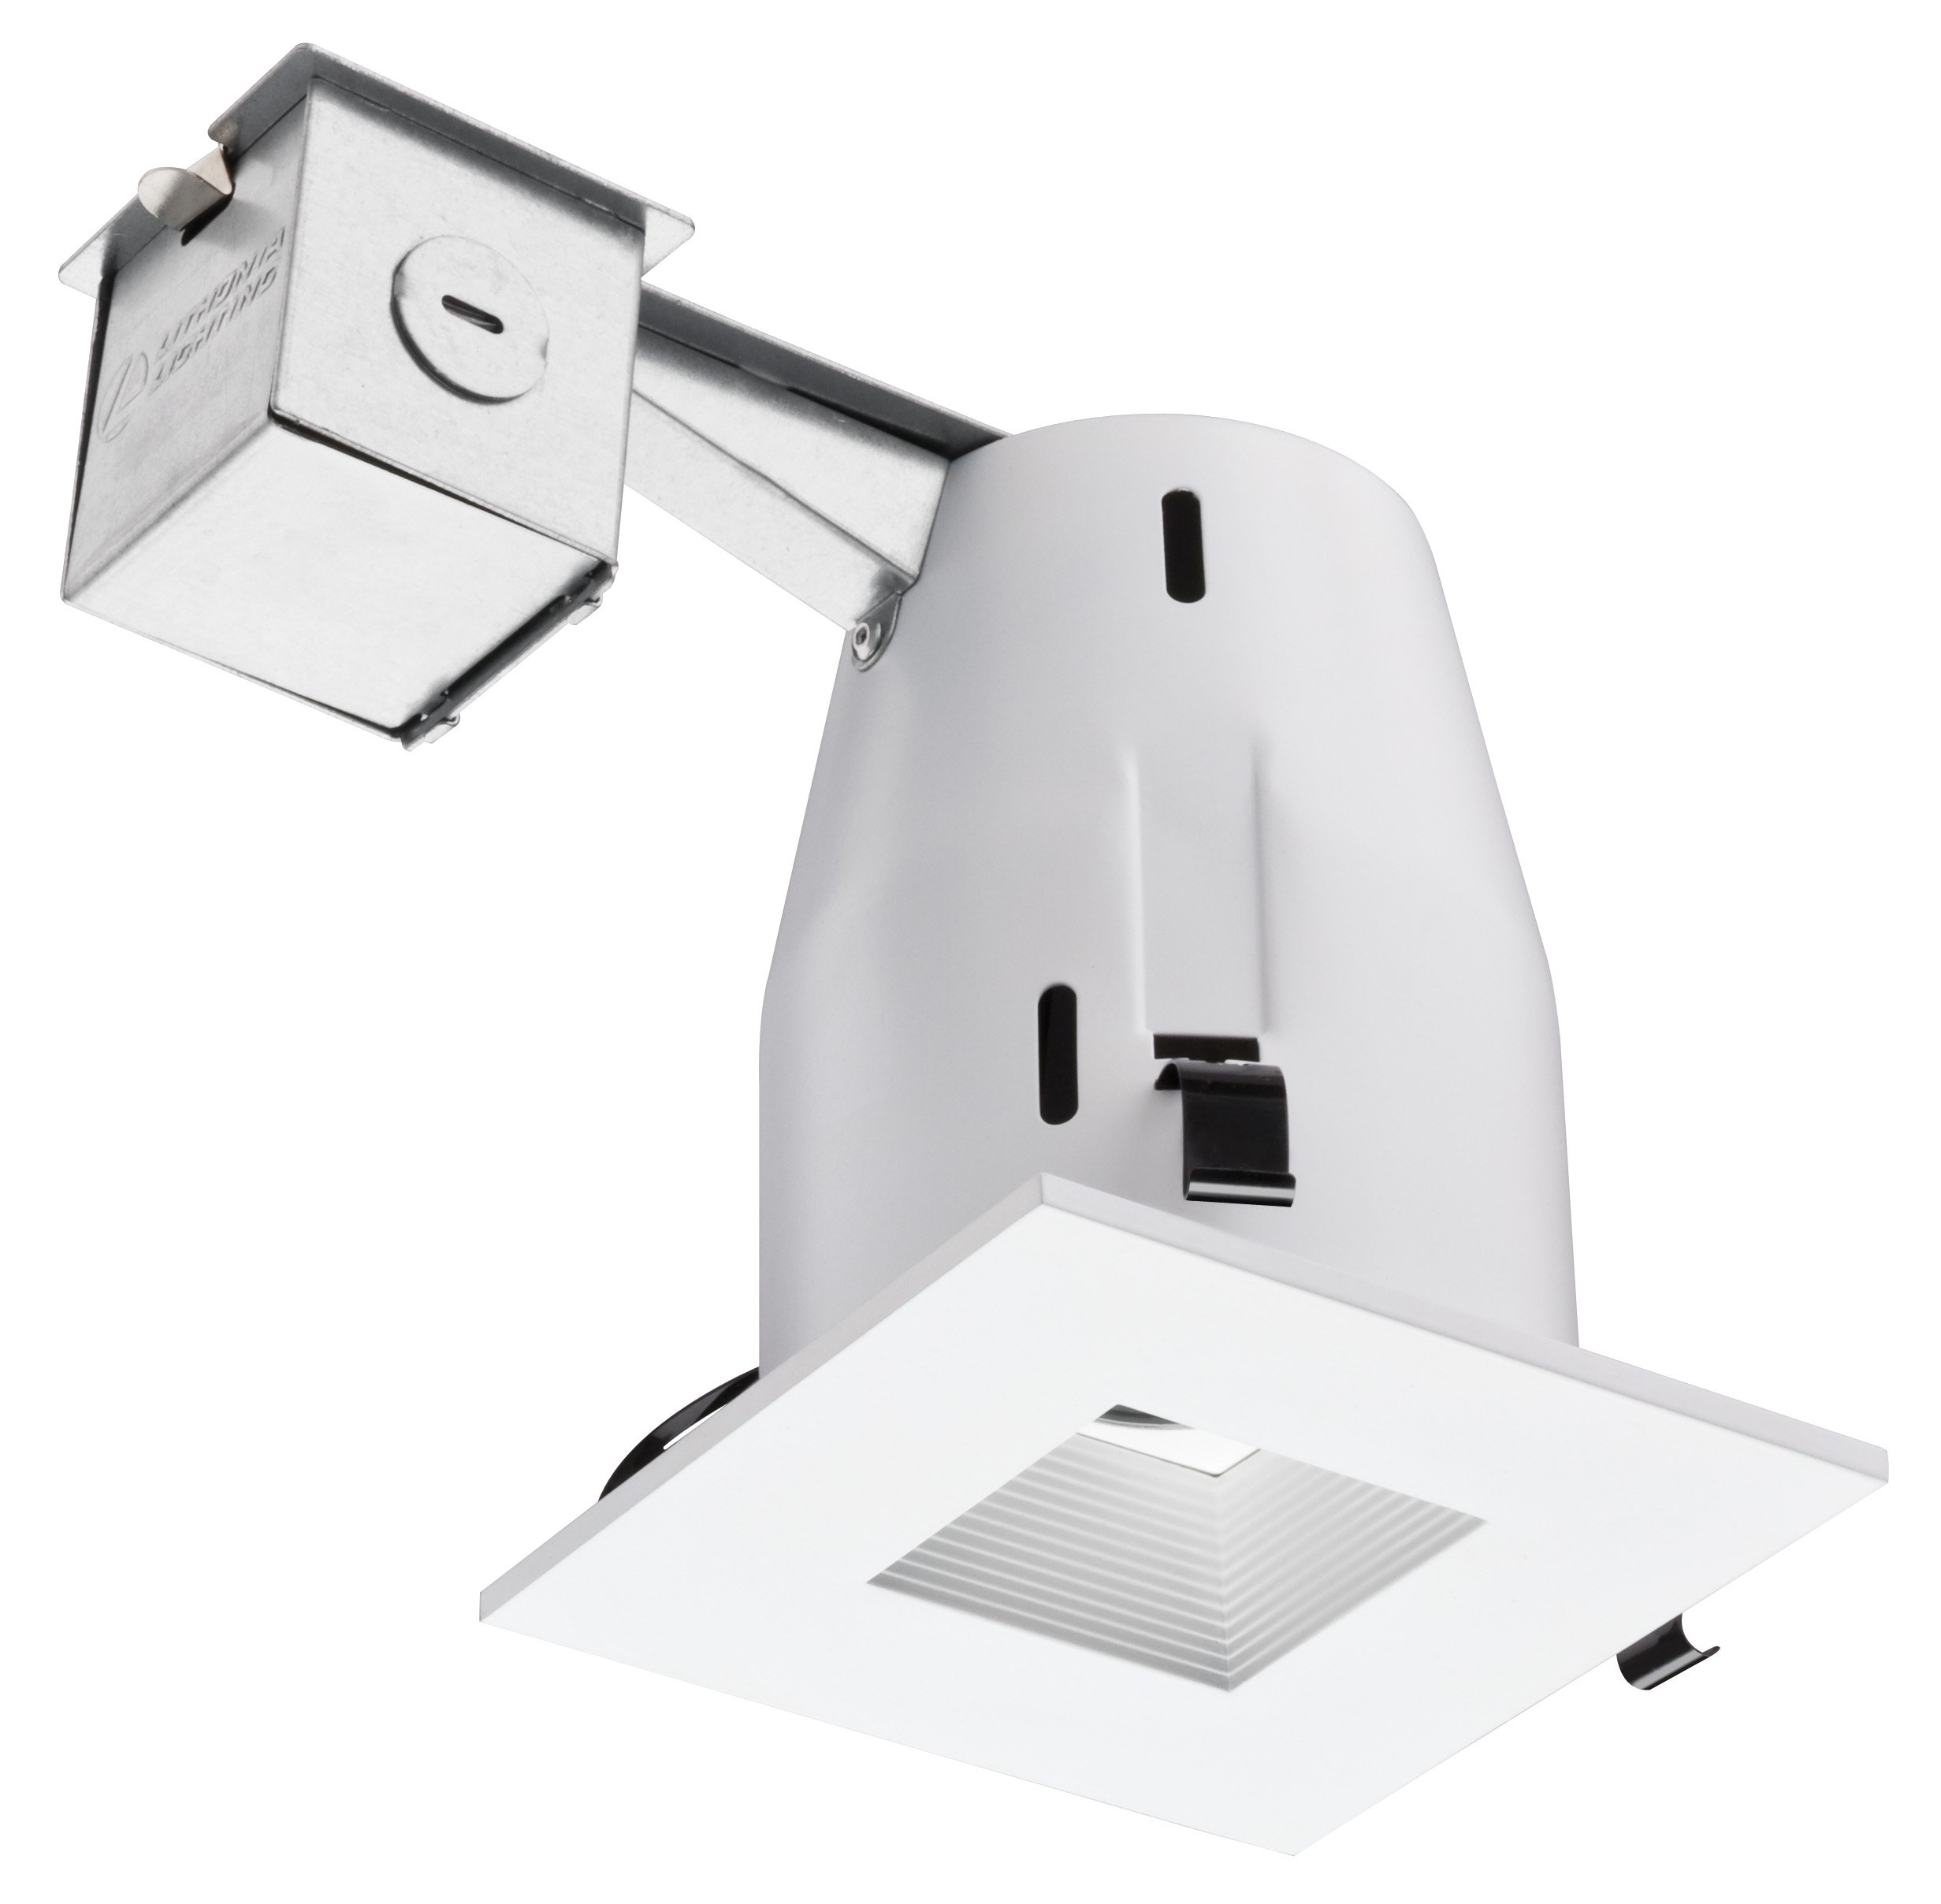 Lithonia Lighting LK4SQMW M6 Square 4 Inch Kit with Halogen Lamp Included in White by Lithonia Lighting (Image #1)